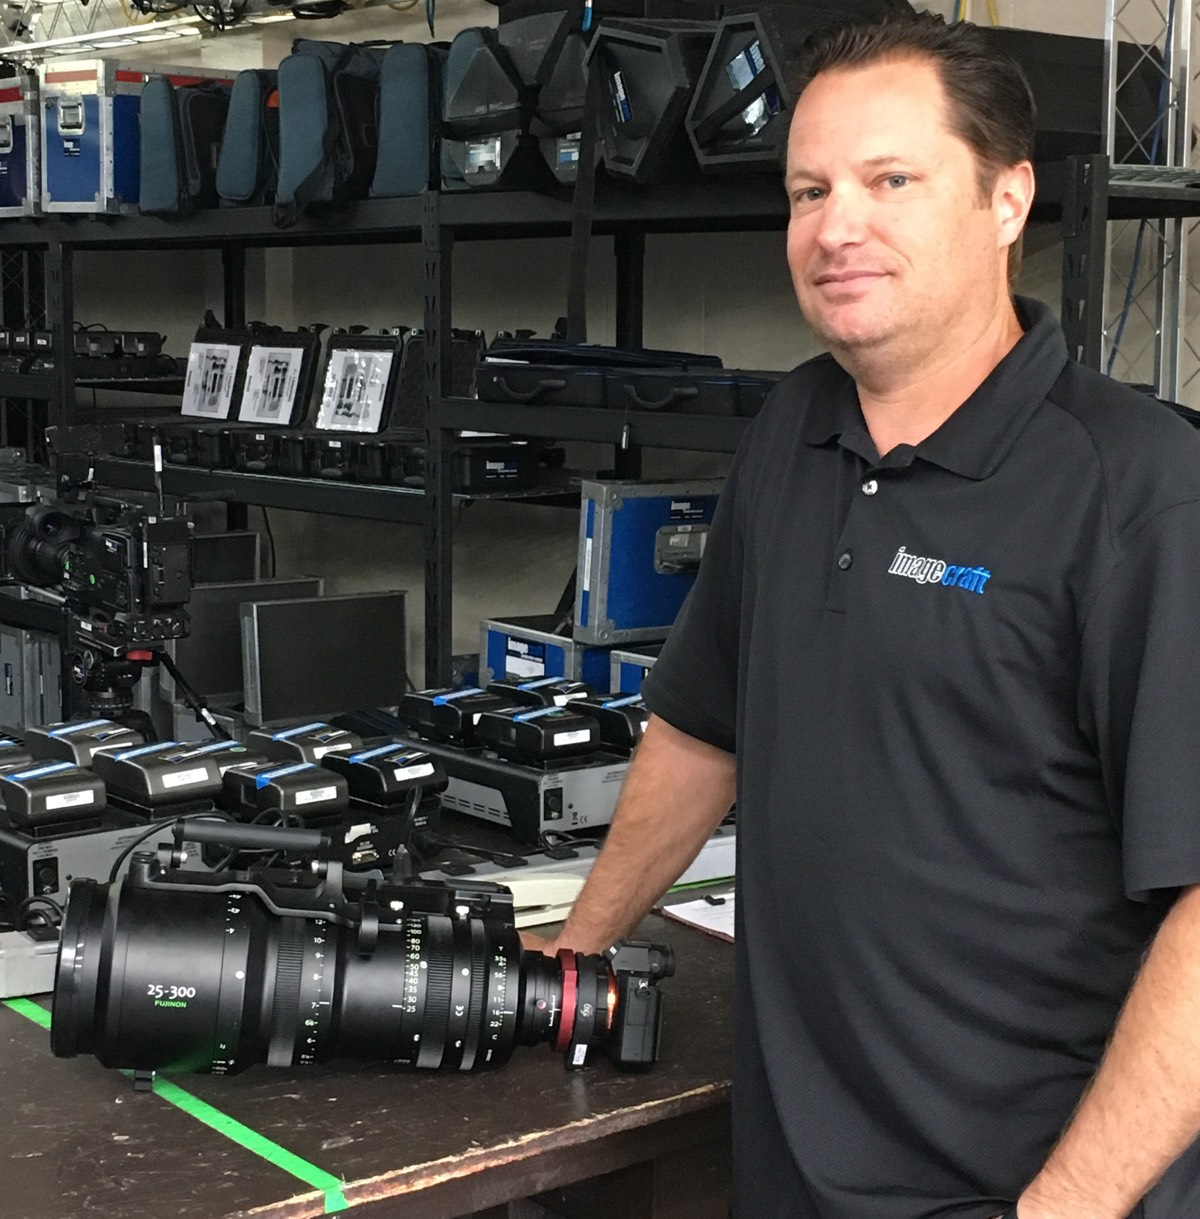 Jason Been, owner and operator of Imagecraft Productions, and the enormous Fujinon 25-300mm lens mounted to his Sony a7rII